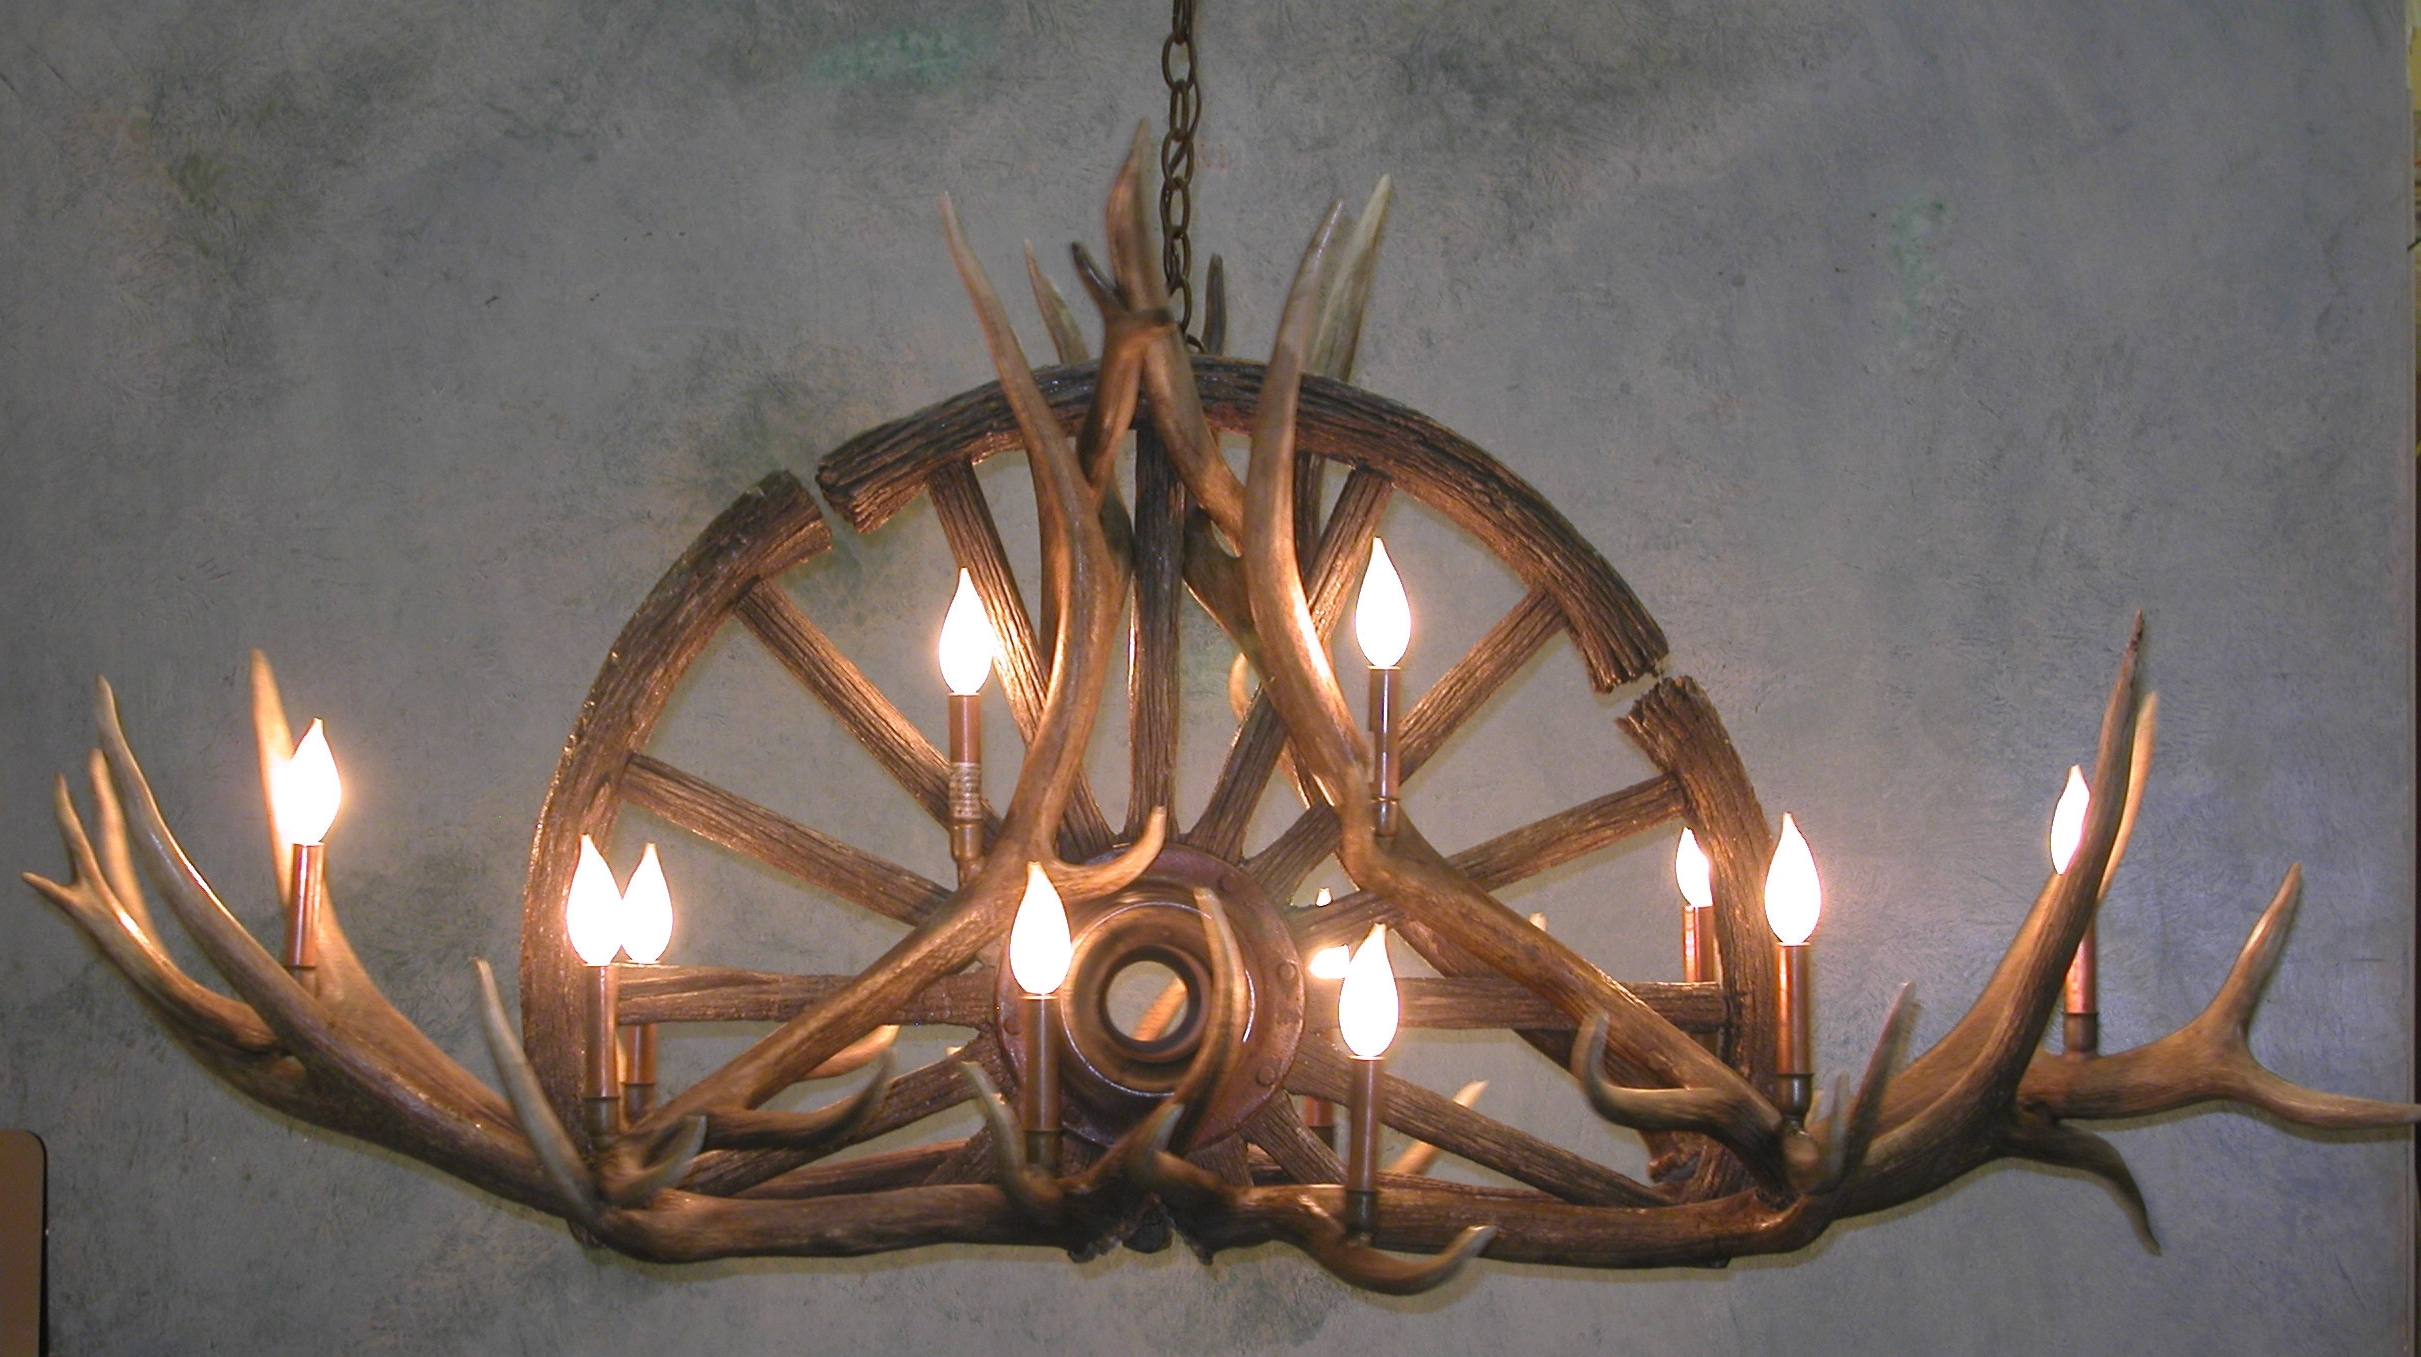 Antler Chandeliers For Sale. Real Mccoy! With Regard To Widely Used Turquoise Antler Chandeliers (Gallery 2 of 20)